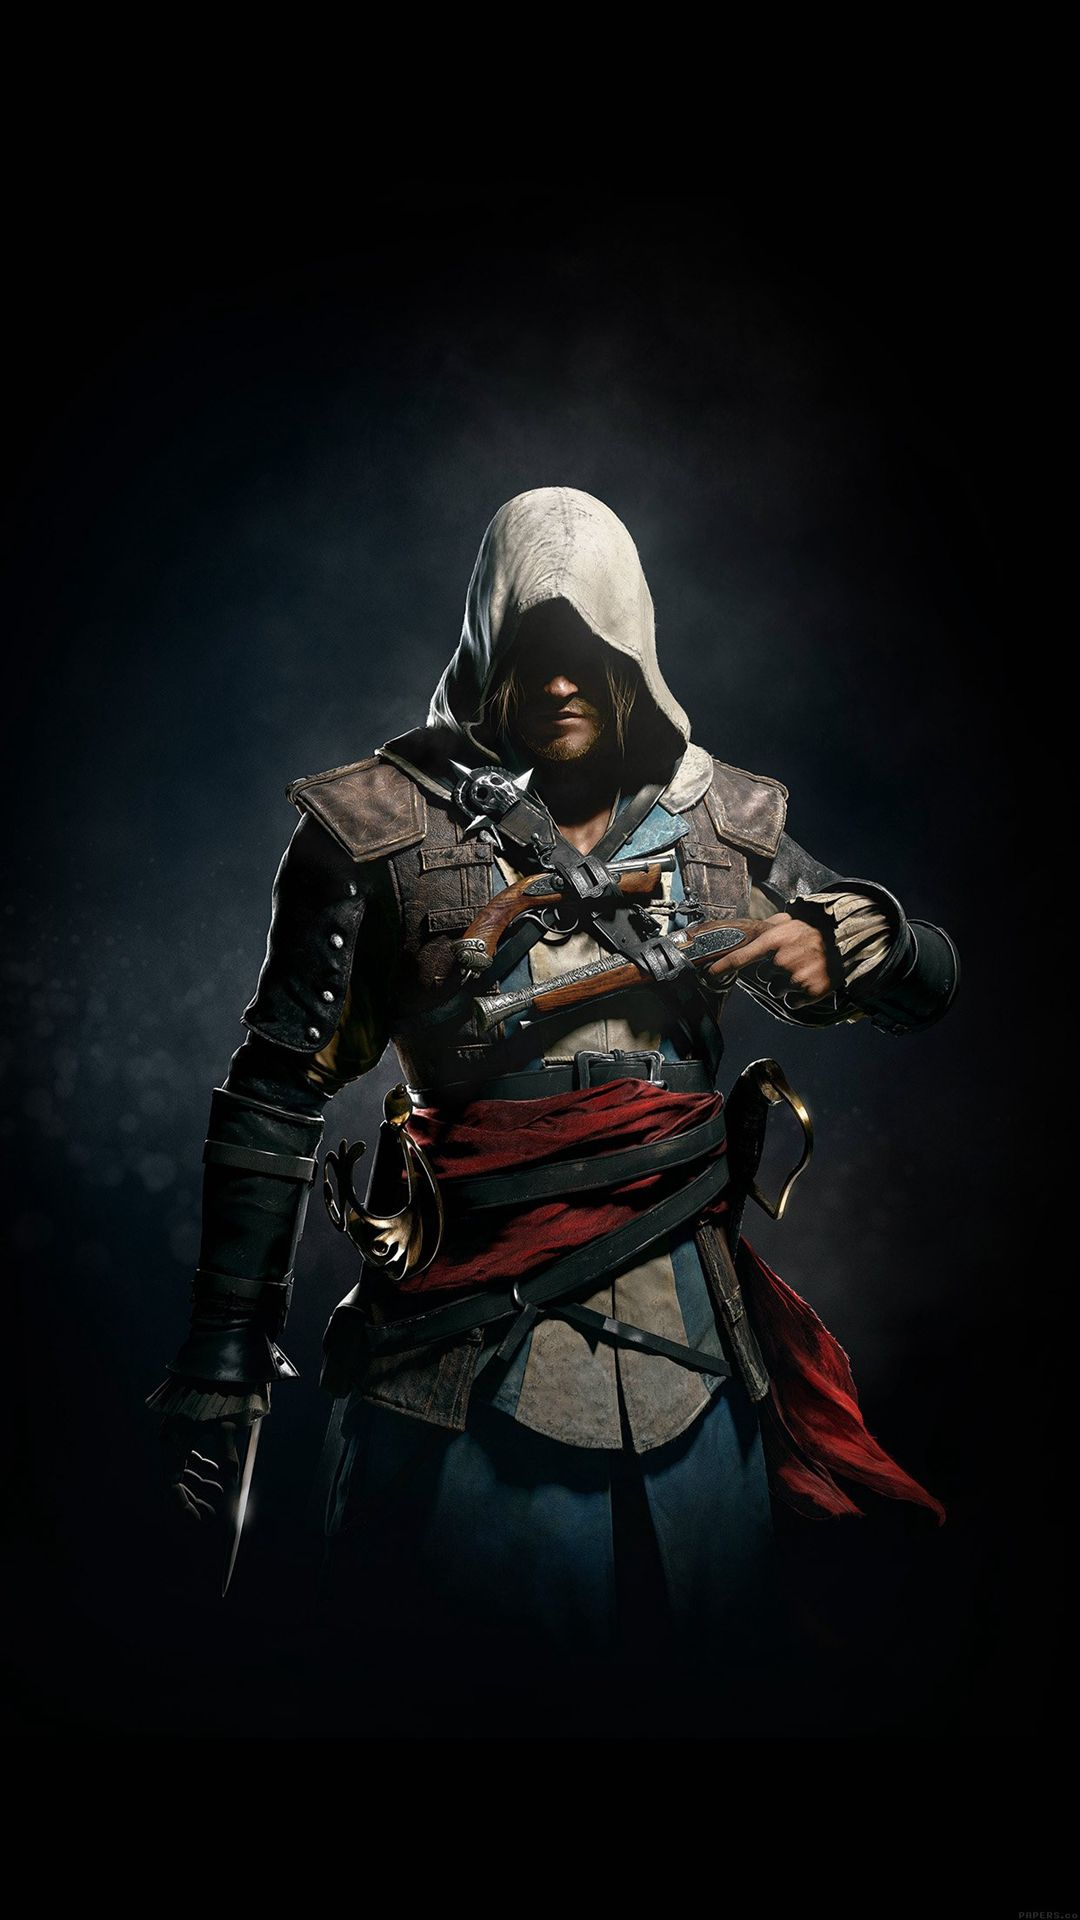 Assassin S Creed Iphone Wallpapers Top Free Assassin S Creed